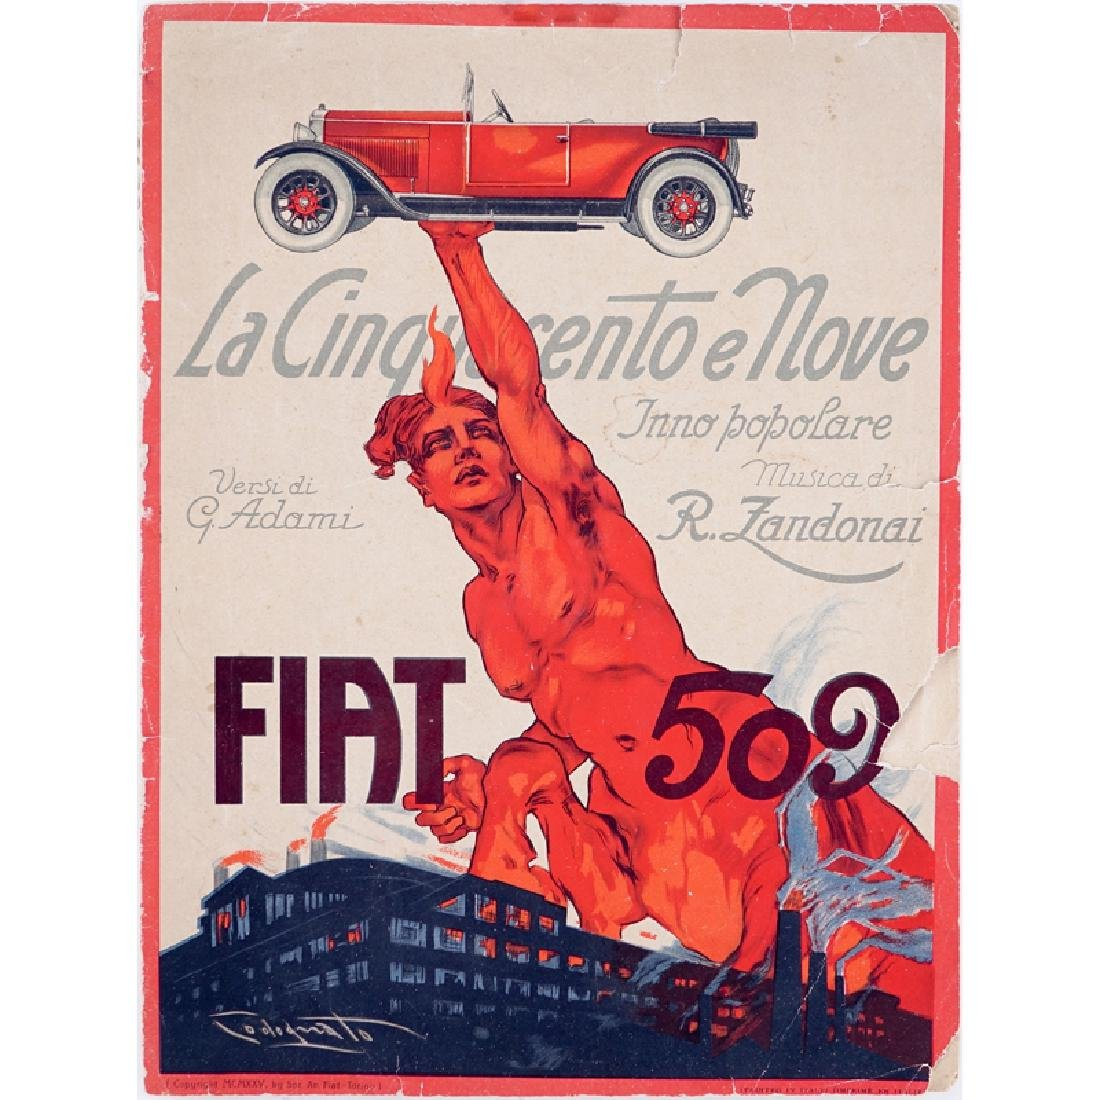 1925 Sheet Music For Fiat 509 Illustrated by Plinio